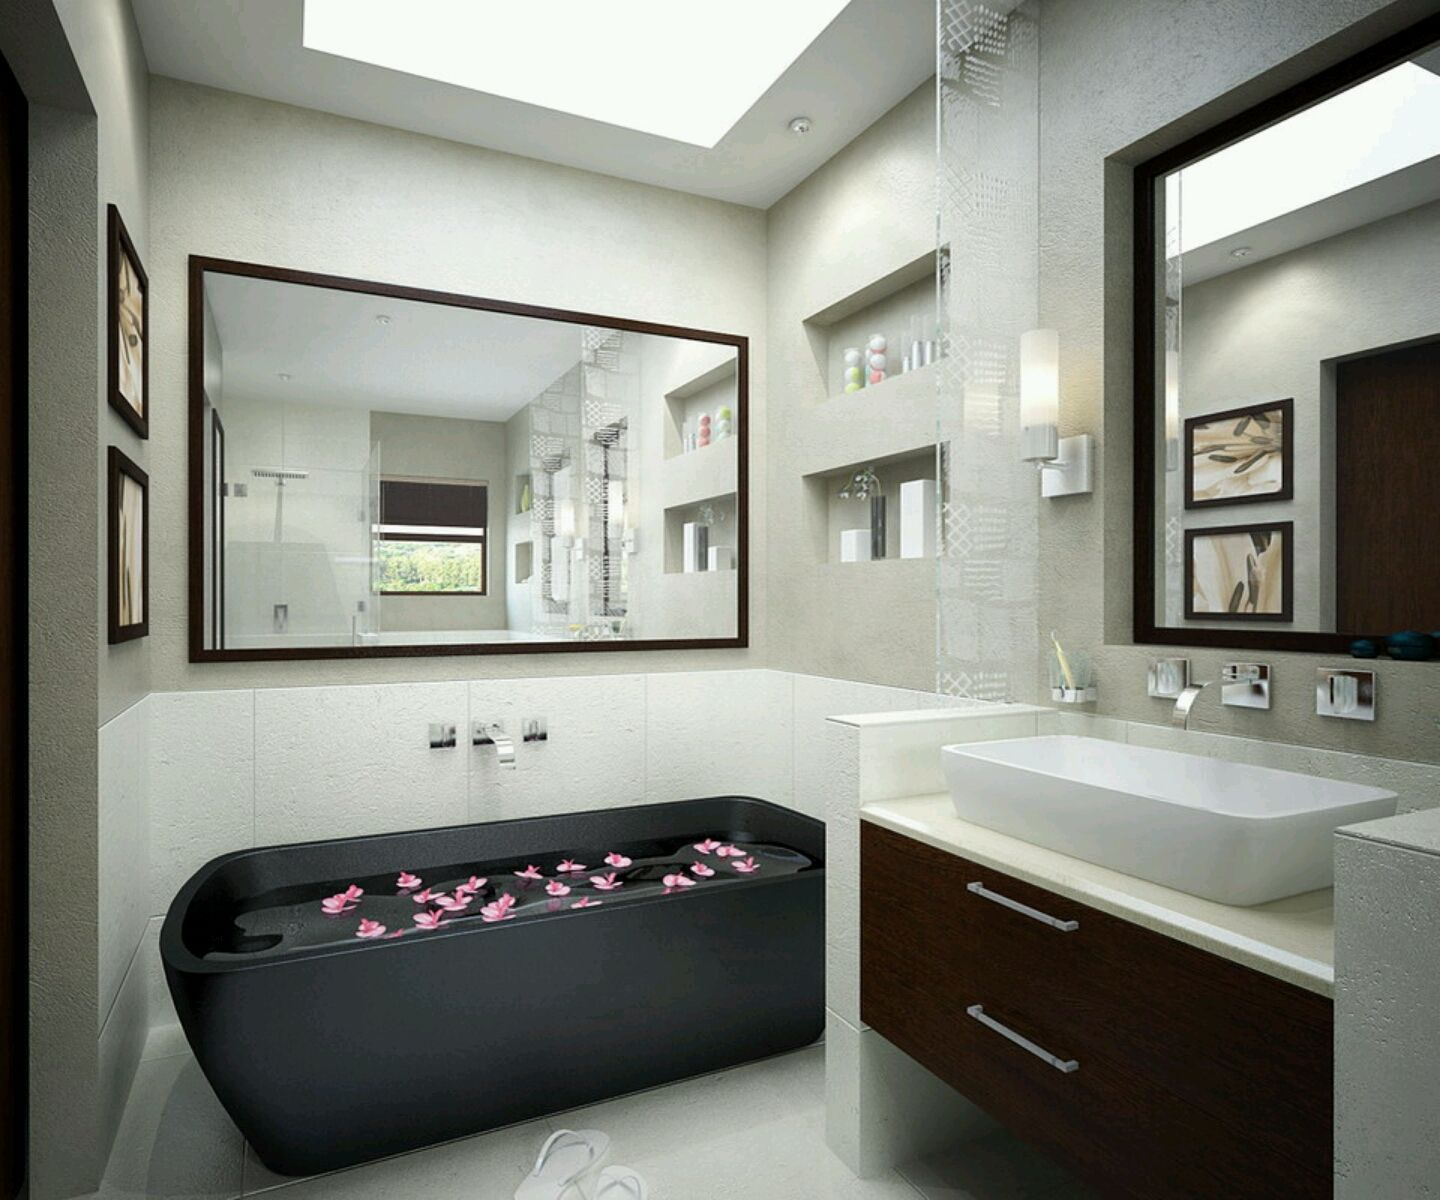 Beautiful Black Bathtub Also Large Wall Mirror Design And Modern Hanging Bathroom Cabinet